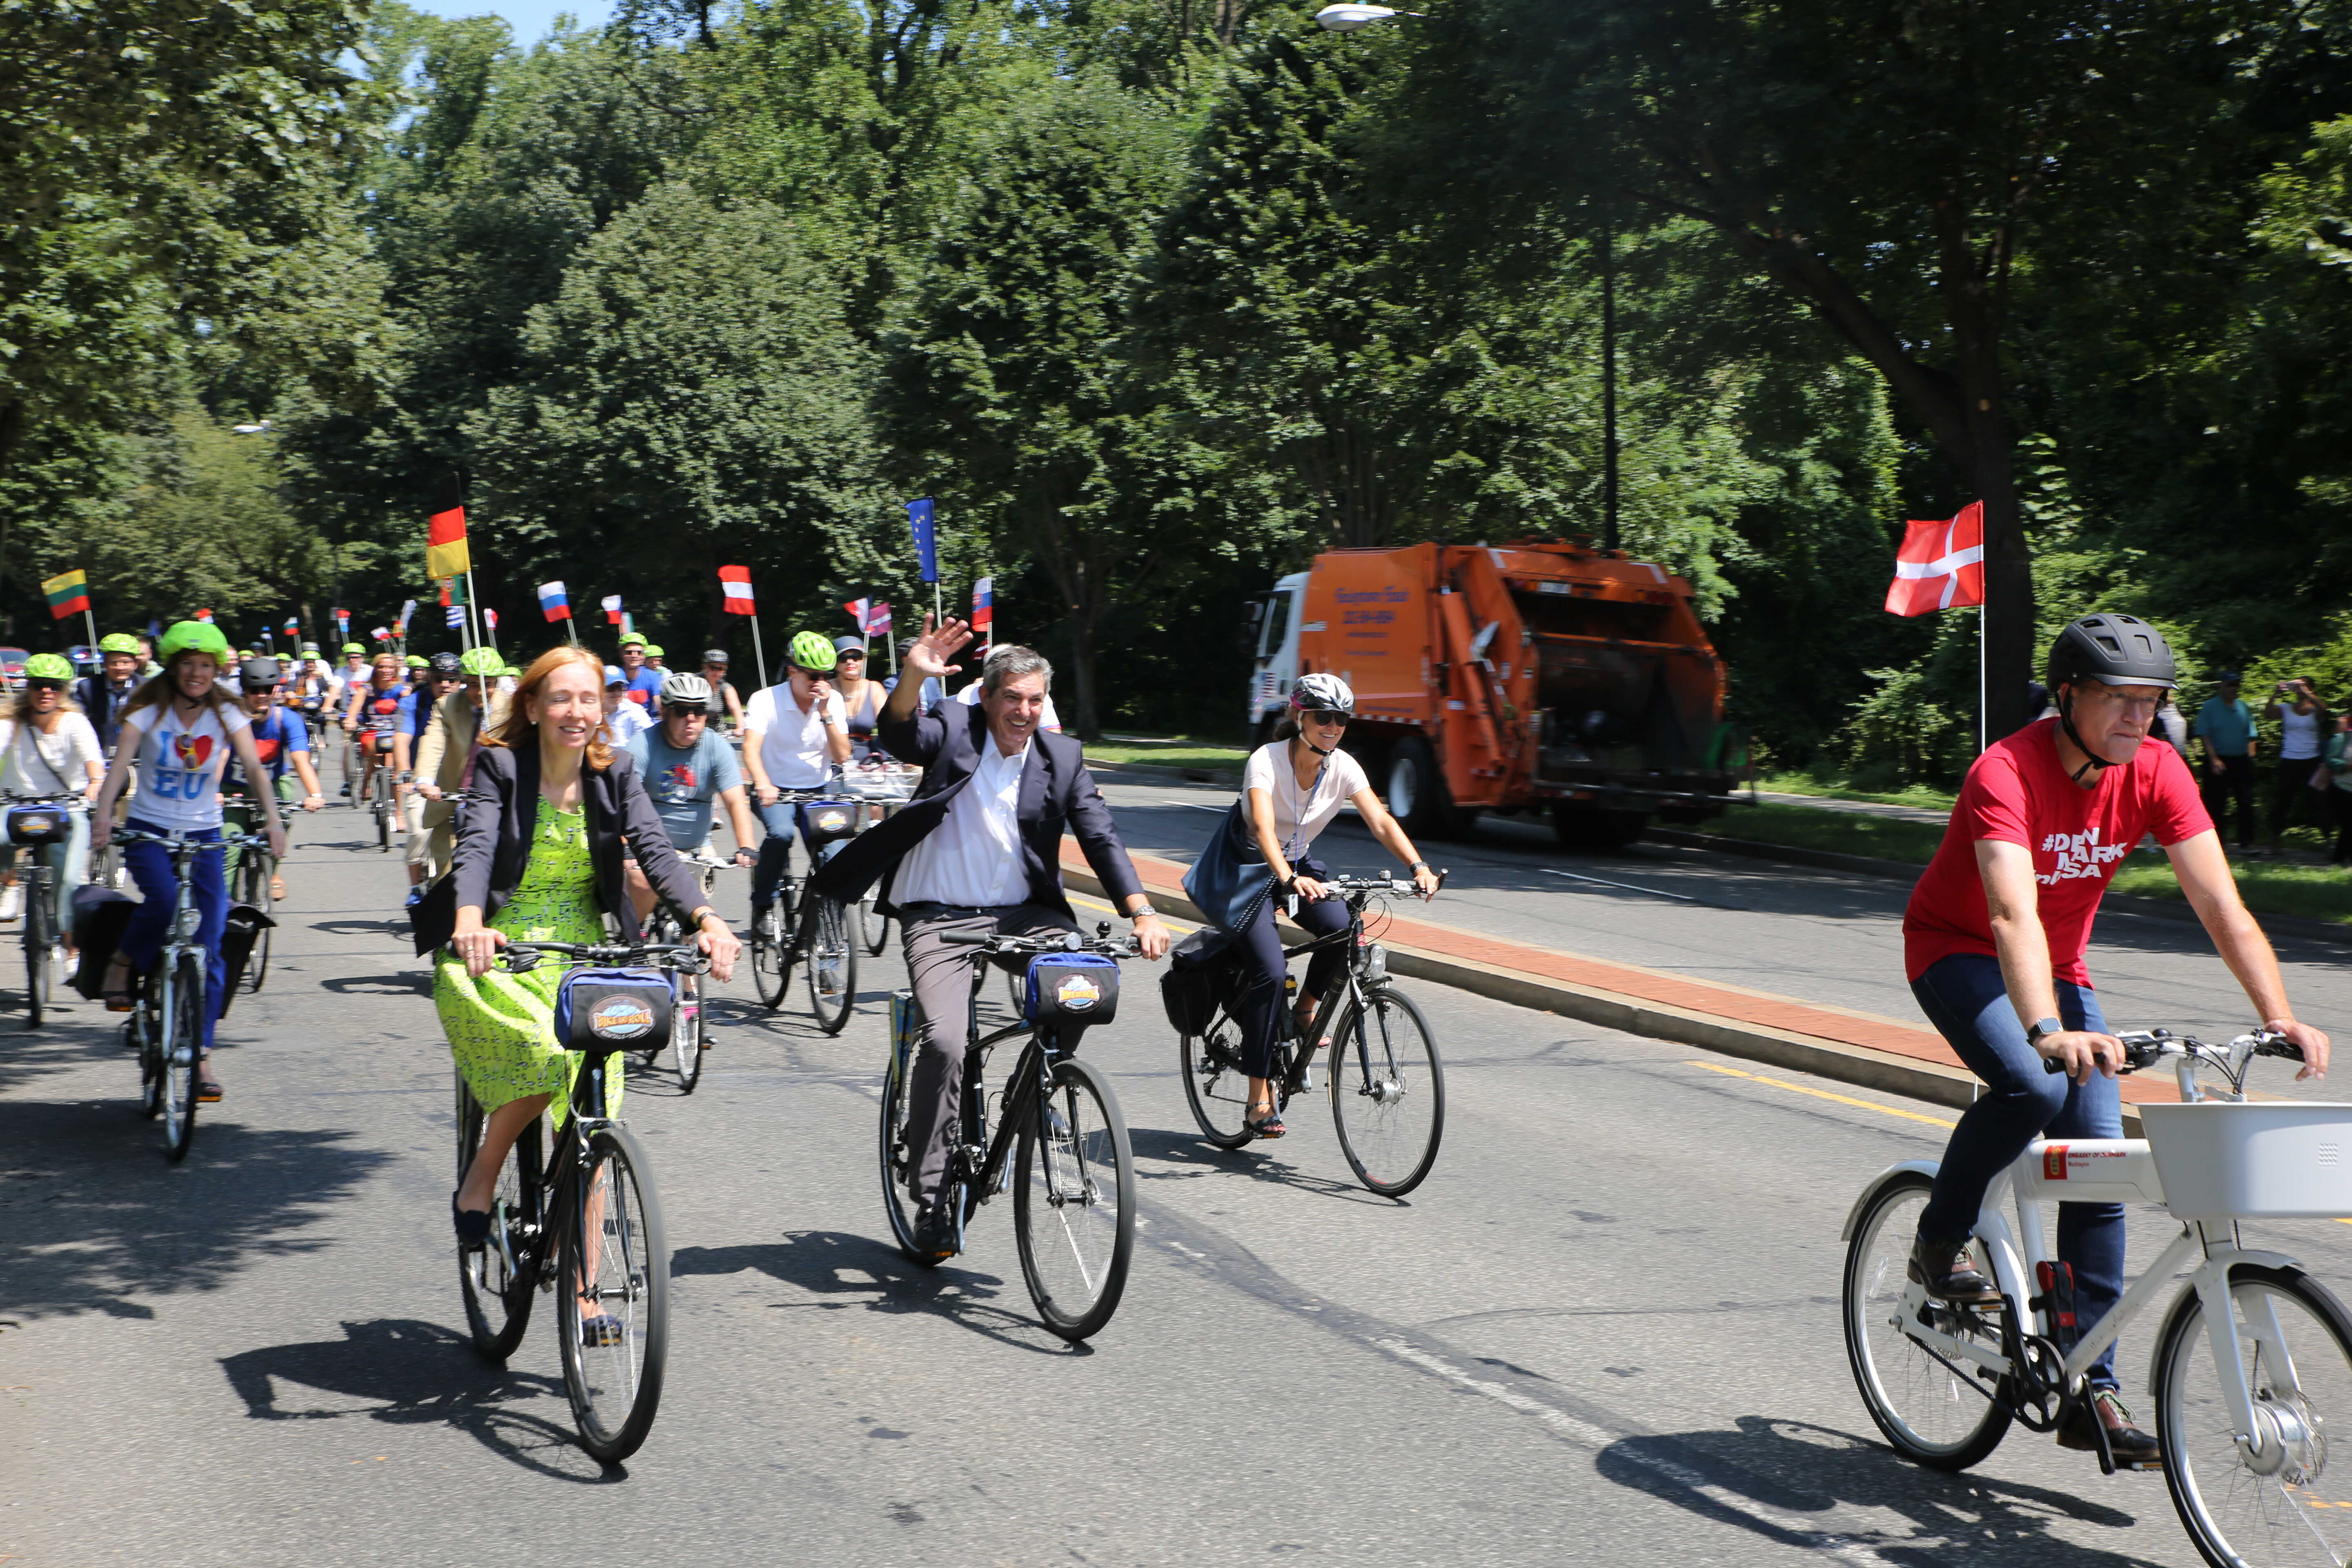 Diplomats Cycle Through DC to Raise Sustainability Awareness | Voice